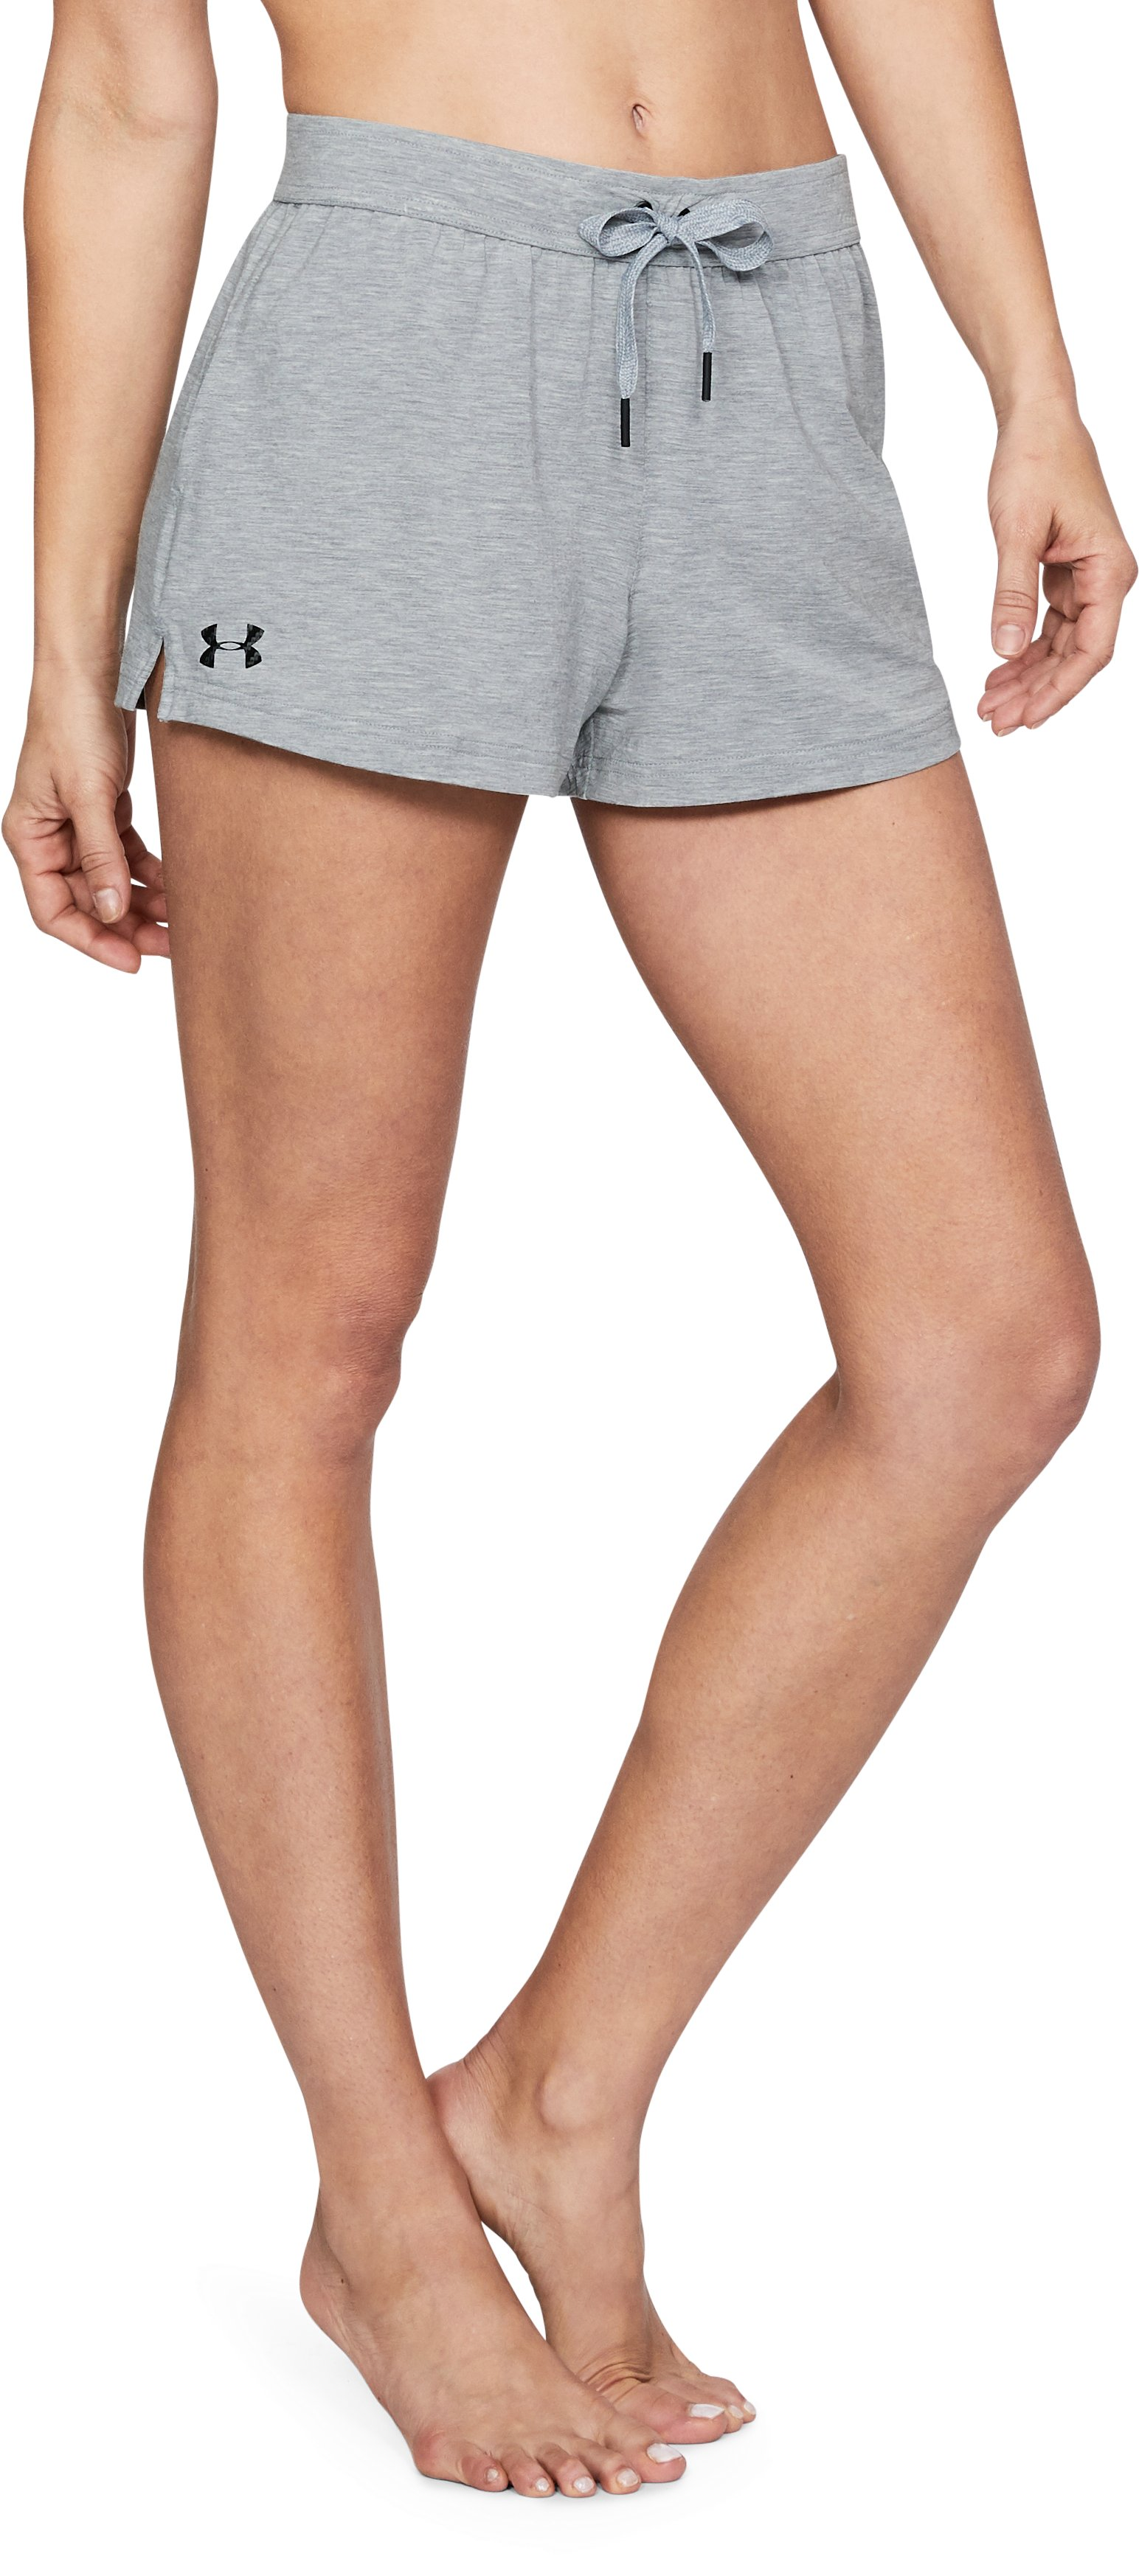 Women's Athlete Recovery Ultra Comfort Sleepwear Shorts, True Gray Heather